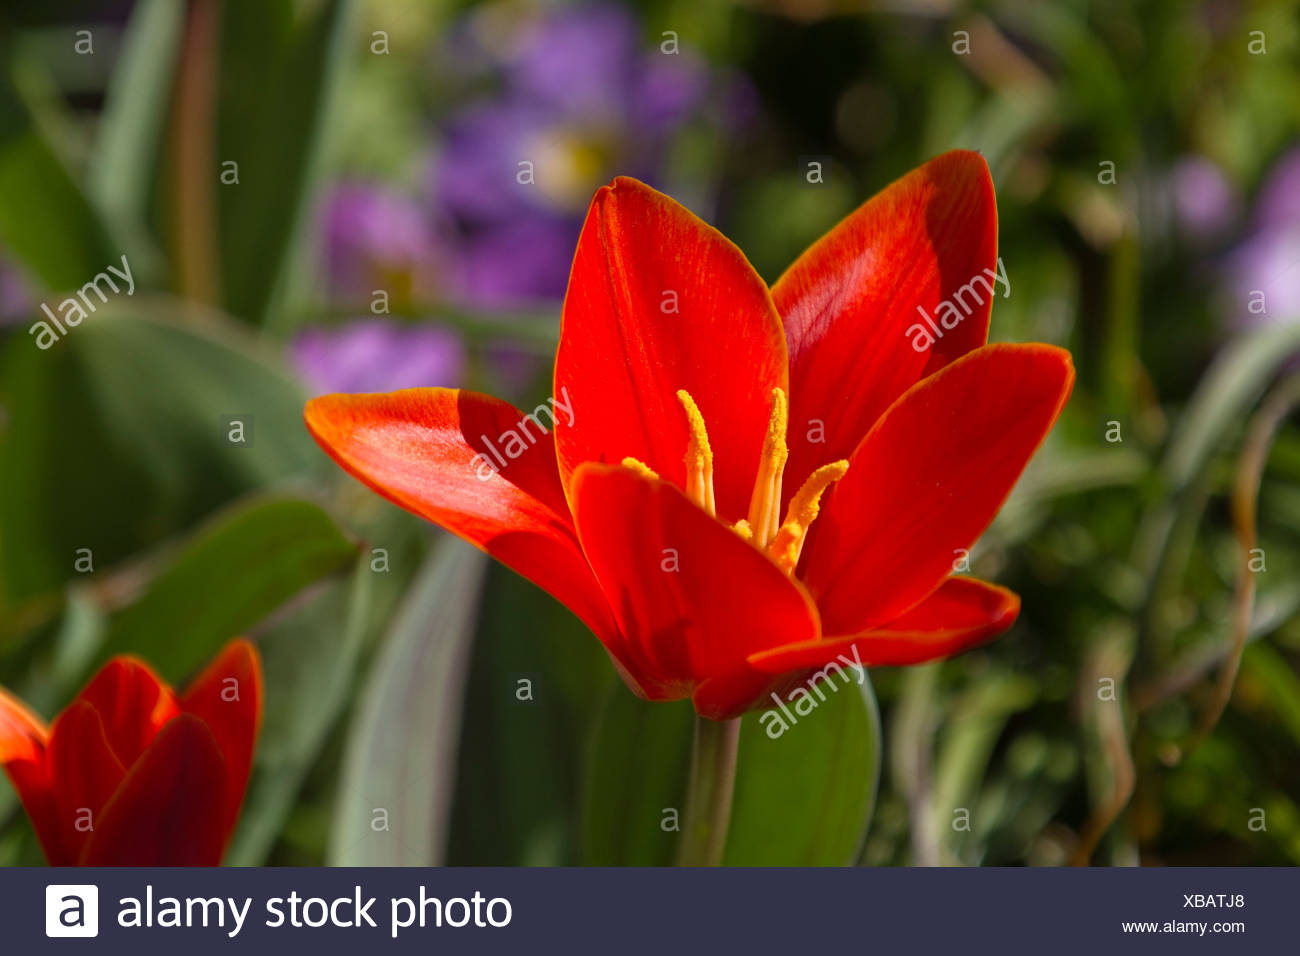 Red Tulip (Tulipa sp.) in a garden, spring, Germany, Europe - Stock Image